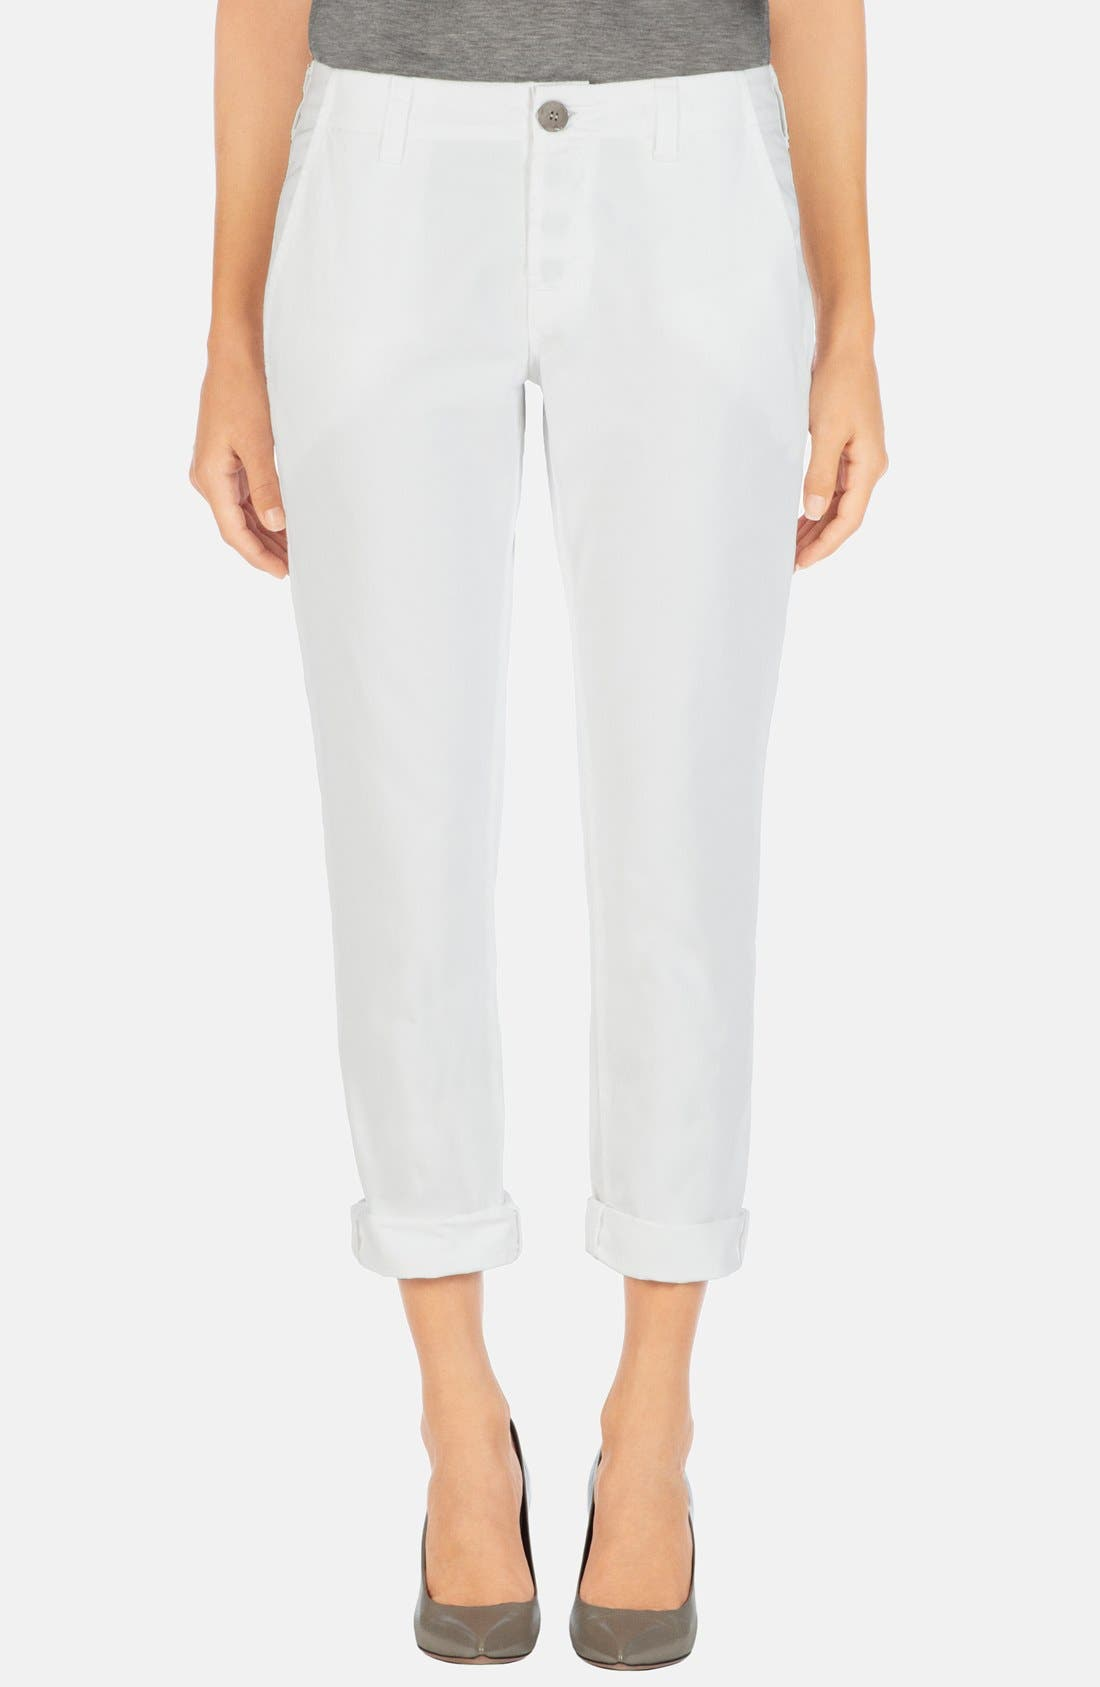 Alternate Image 1 Selected - J Brand 'Inez' Crop Slim Pants